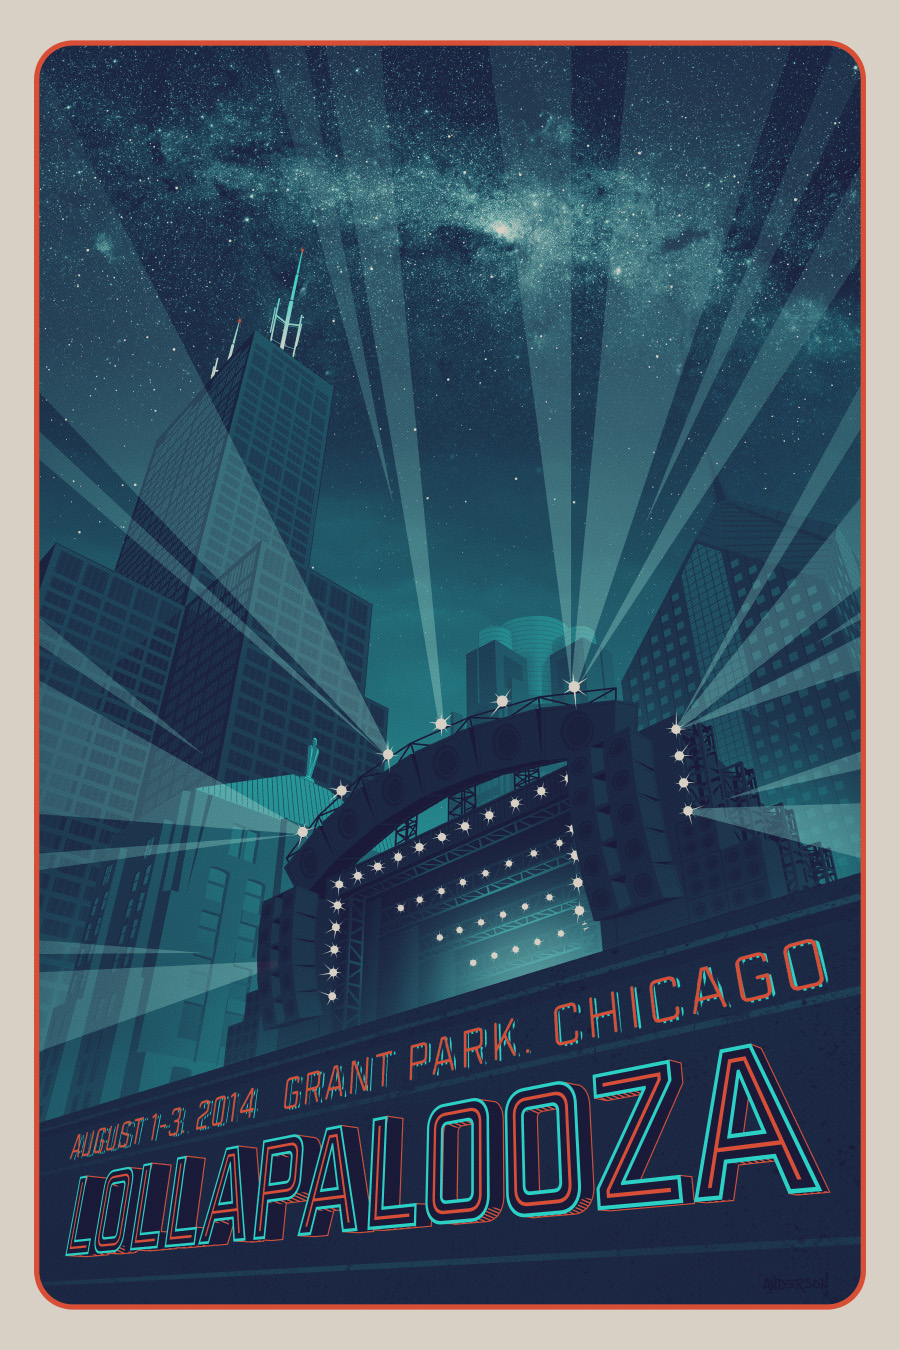 """Lollapalooza - Chicago 2014"" by Tim Anderson. 24"" x 36"" 3-color Screenprint + GID inks.  Ed of 100 S/N.  $175"